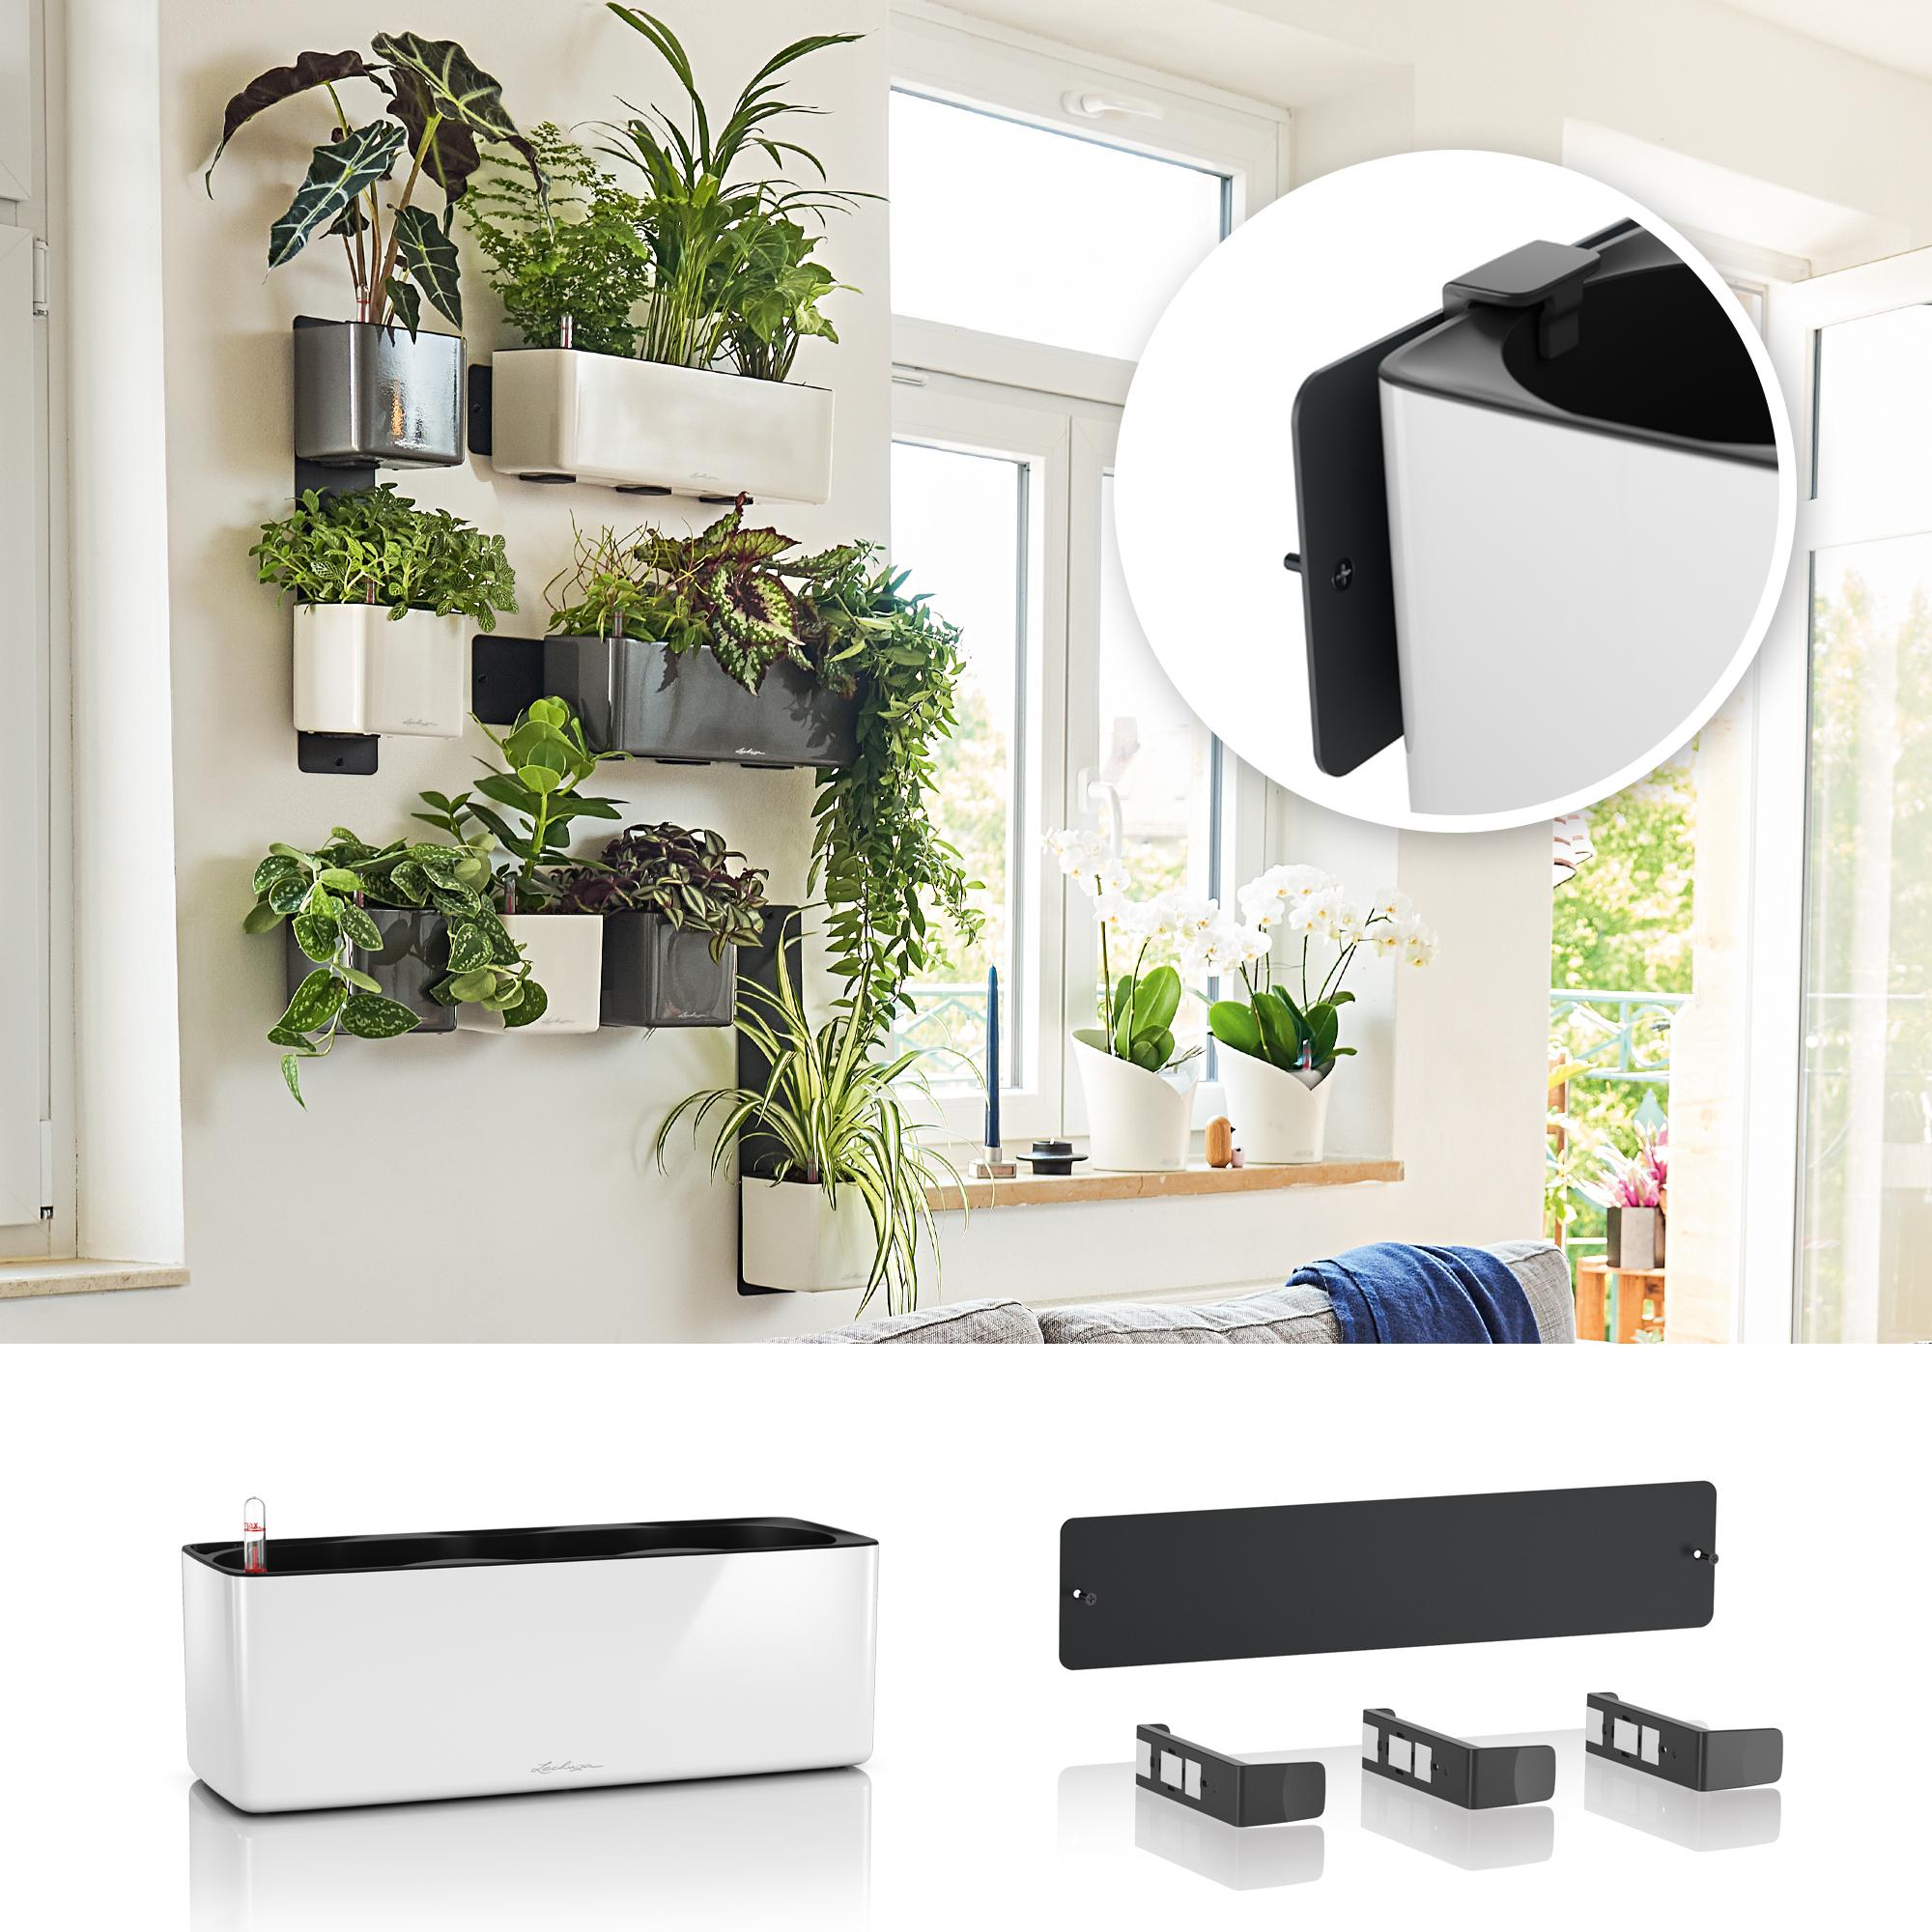 le_cube-glossy-triple_product_content_04